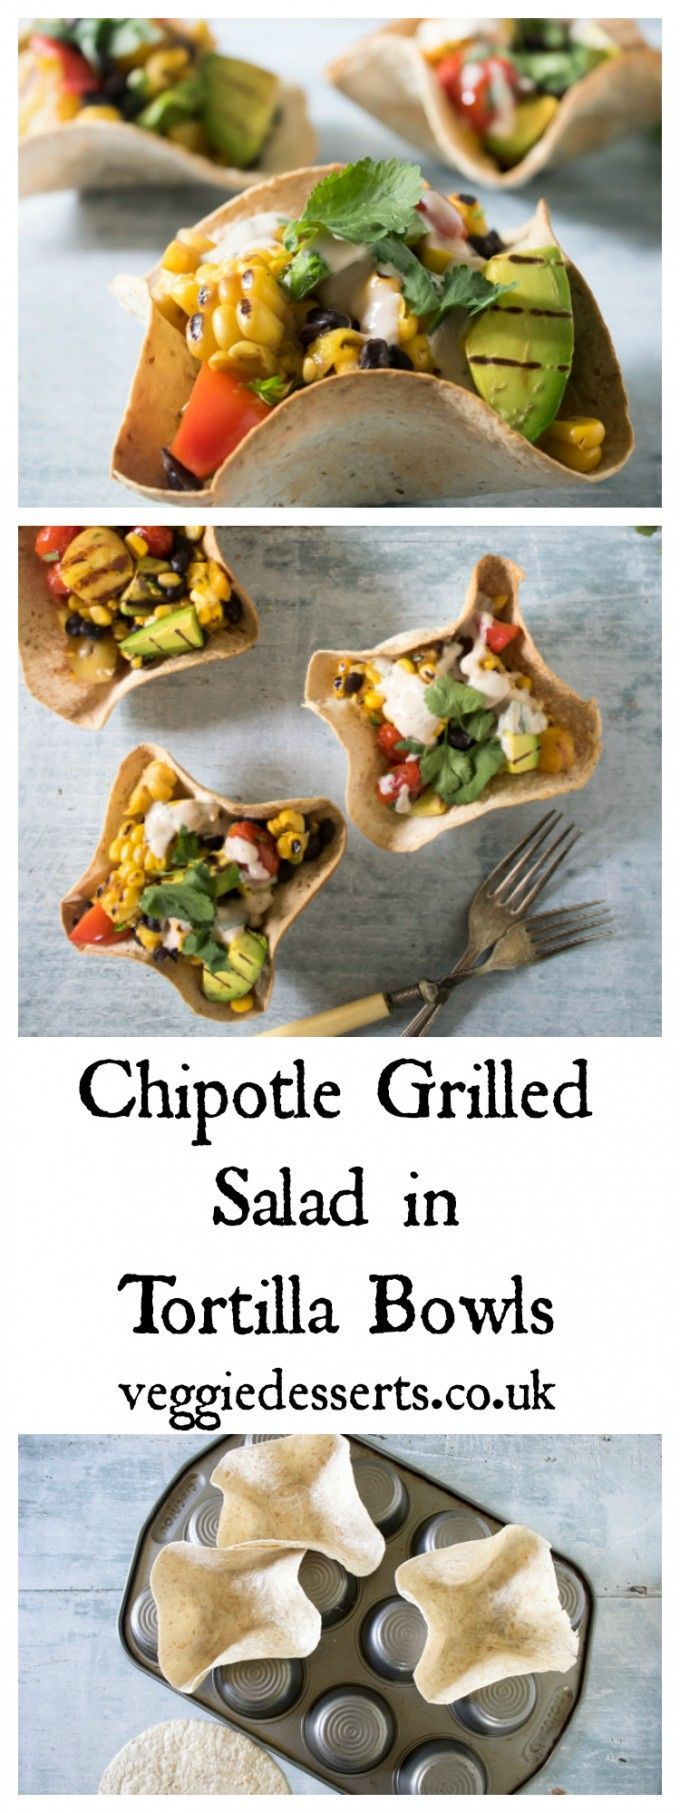 Mexican Chipotle Grilled Salad in Tortilla Bowls   Veggie Desserts Blog >>> Don't these tortilla bowls look great? They're fun, but so easy to make. I've filled them with a salad of chipotle black beans, and barbecued corn, potatoes, mango and peppers. >>